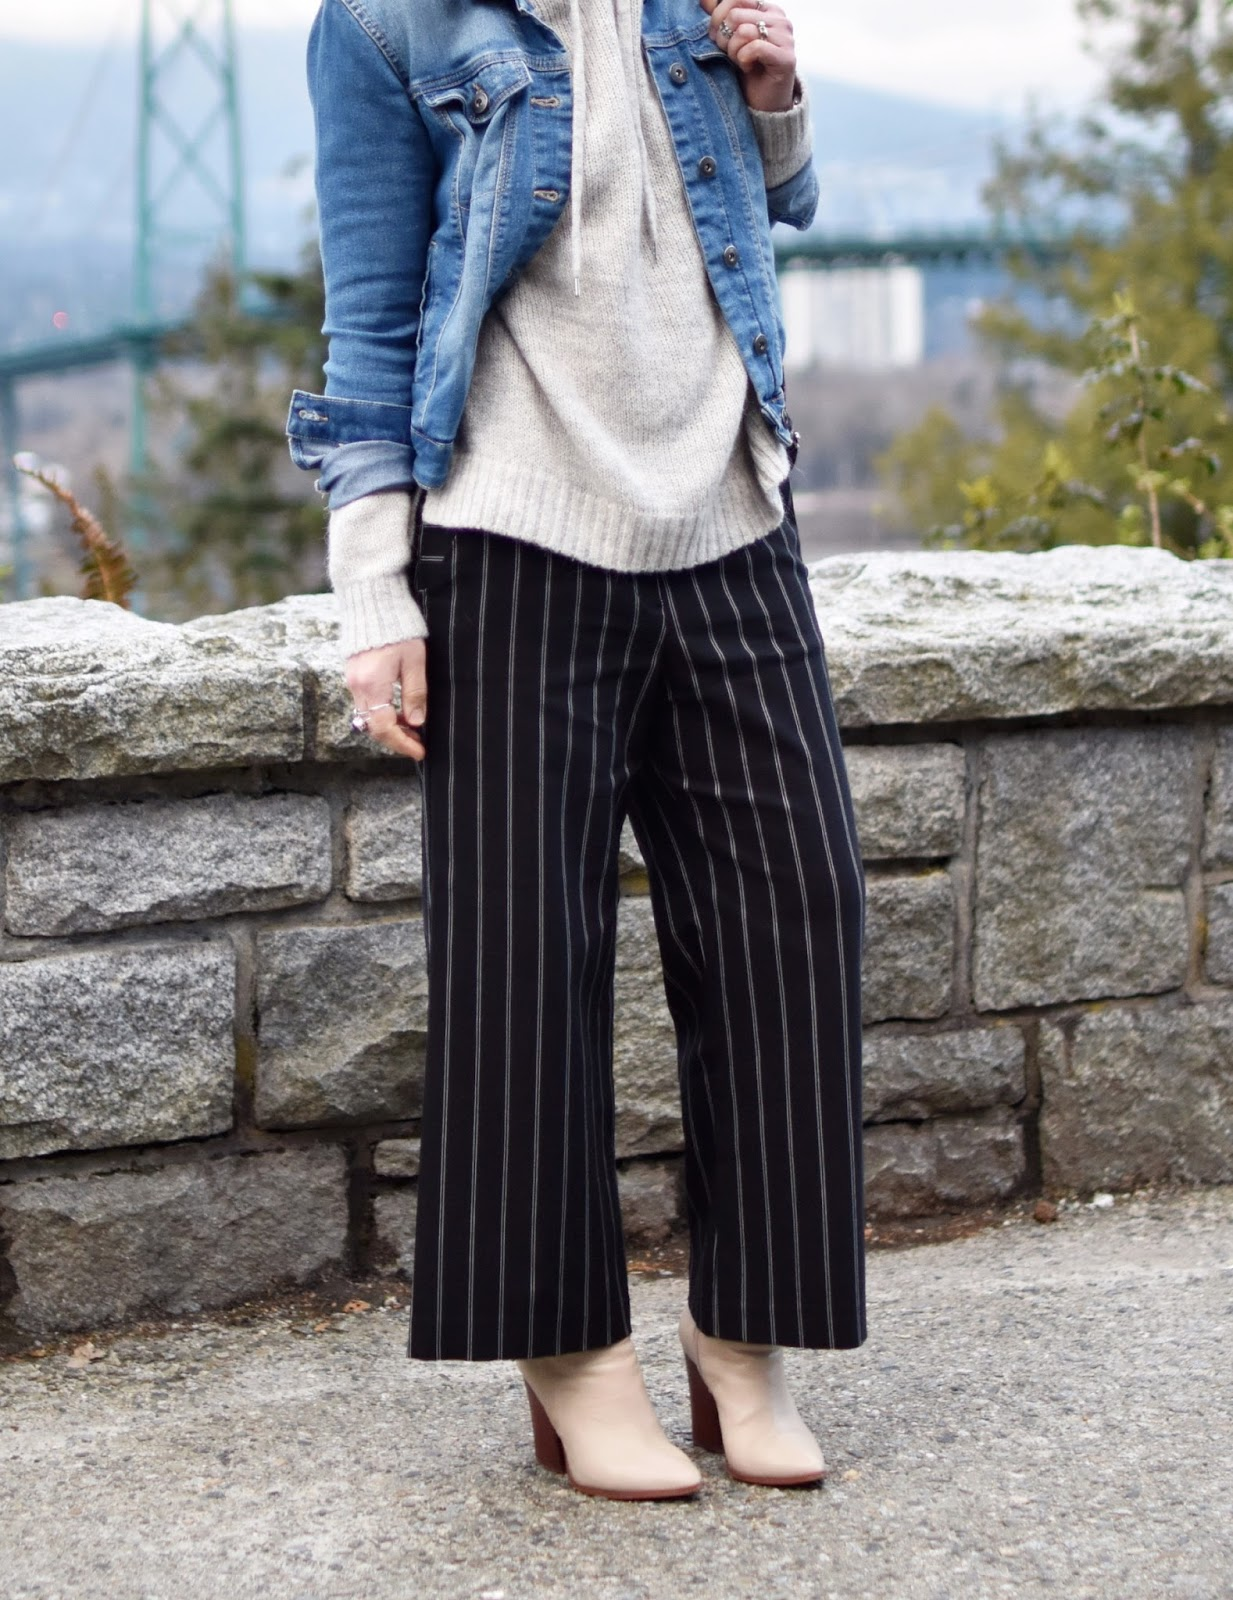 Monika Faulkner outfit inspiration -  striped cropped trousers, hoodie sweater, denim jacket, and ivory booties